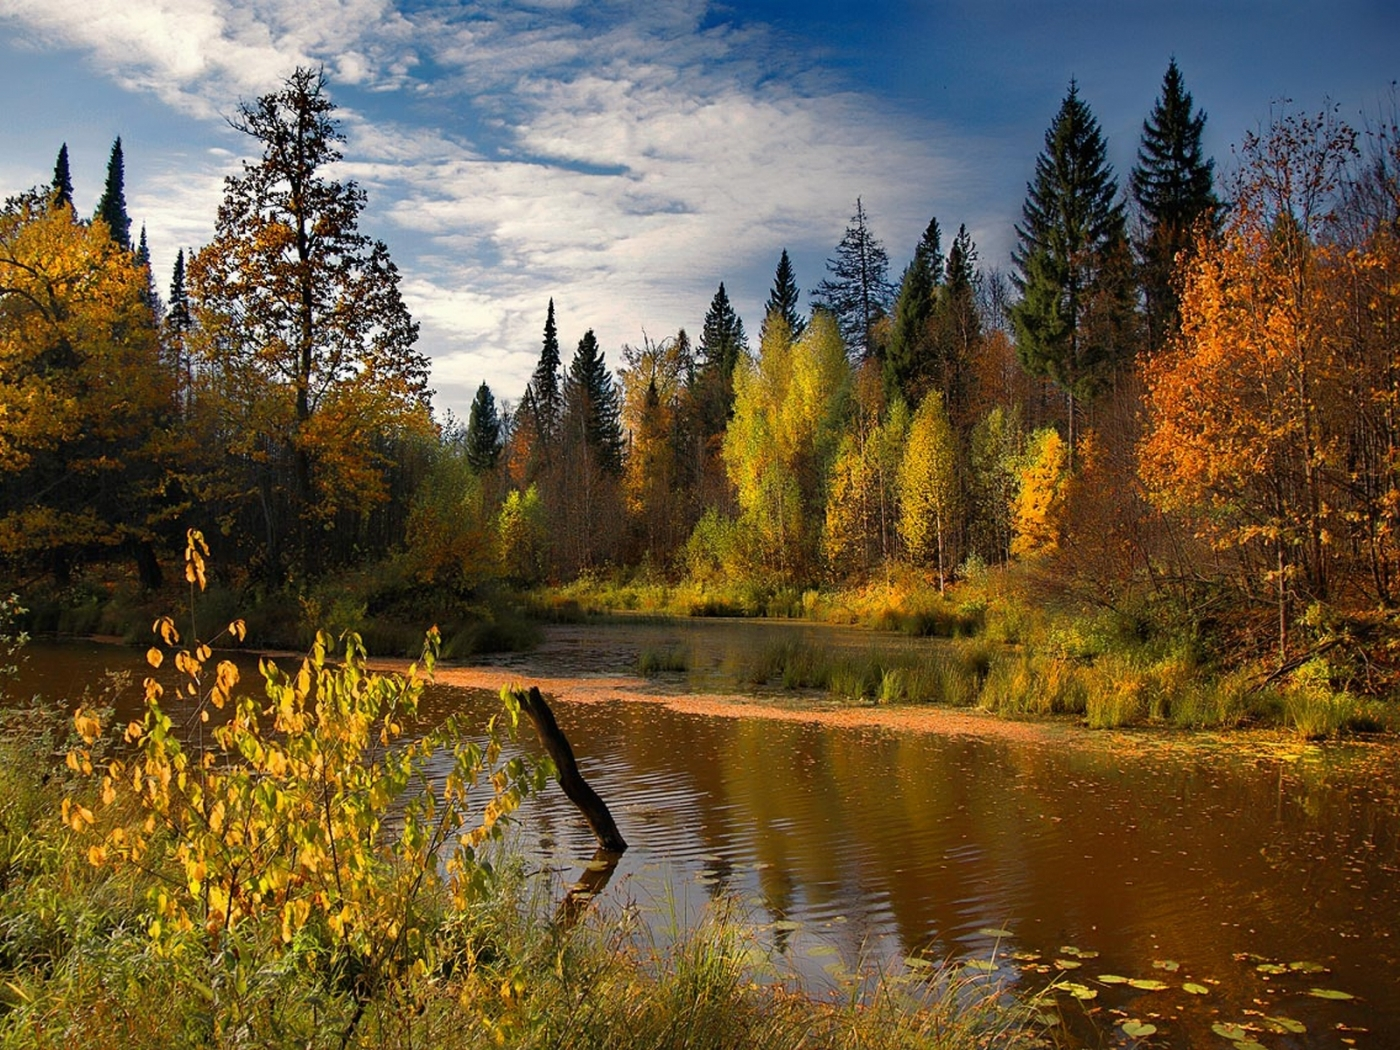 30216 download wallpaper Landscape, Rivers, Autumn screensavers and pictures for free